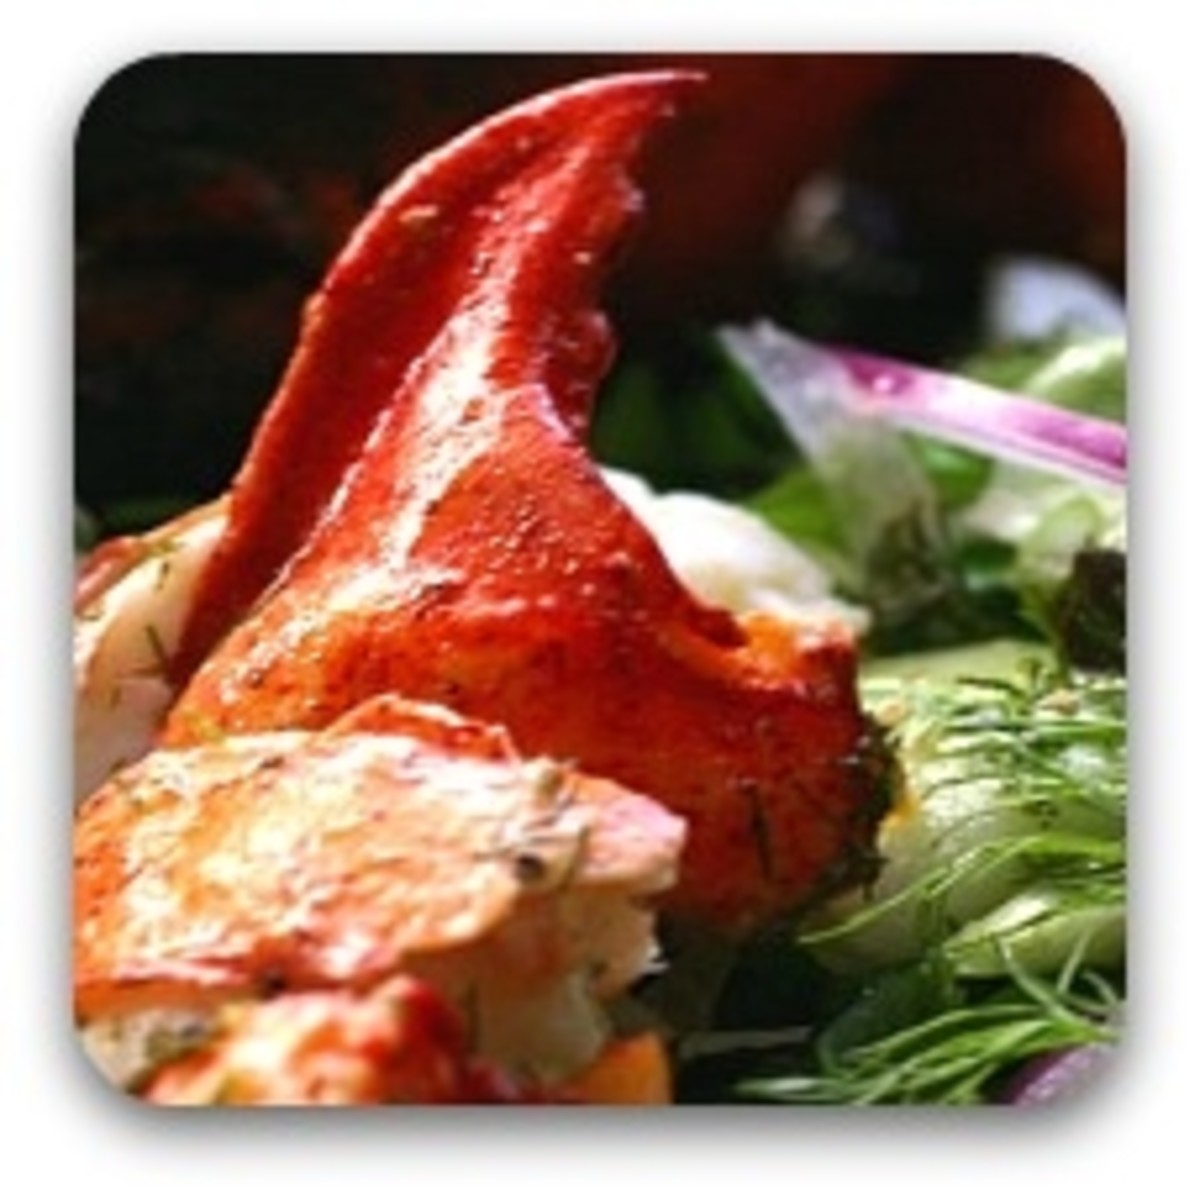 Maine Lobster Salad with Wasabi Dill Dressing